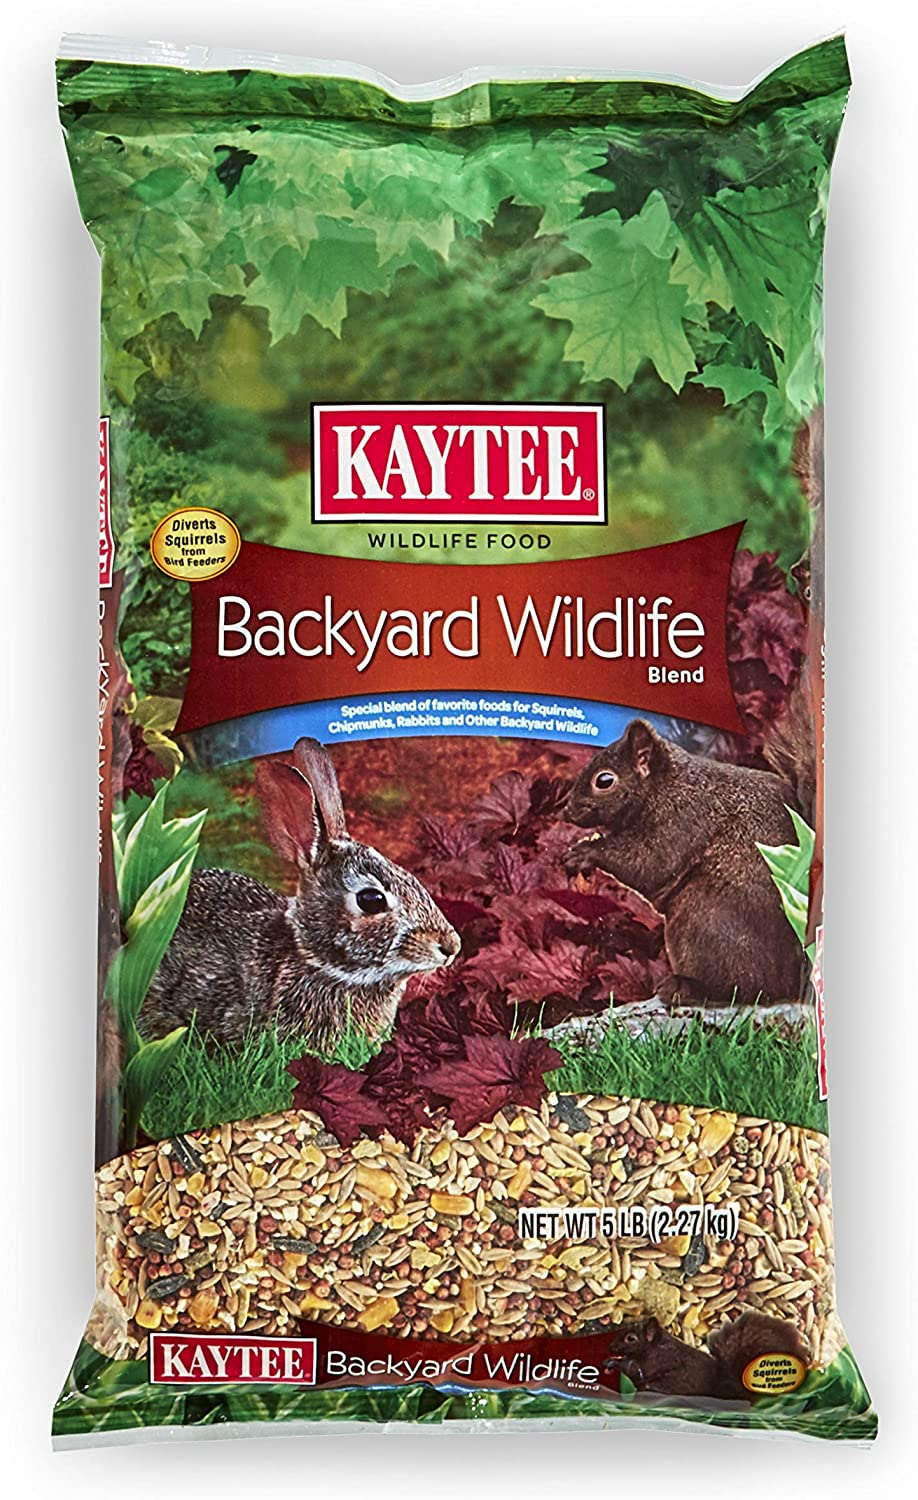 Kaytee Backyard Wildlife, 5-Pound Bag